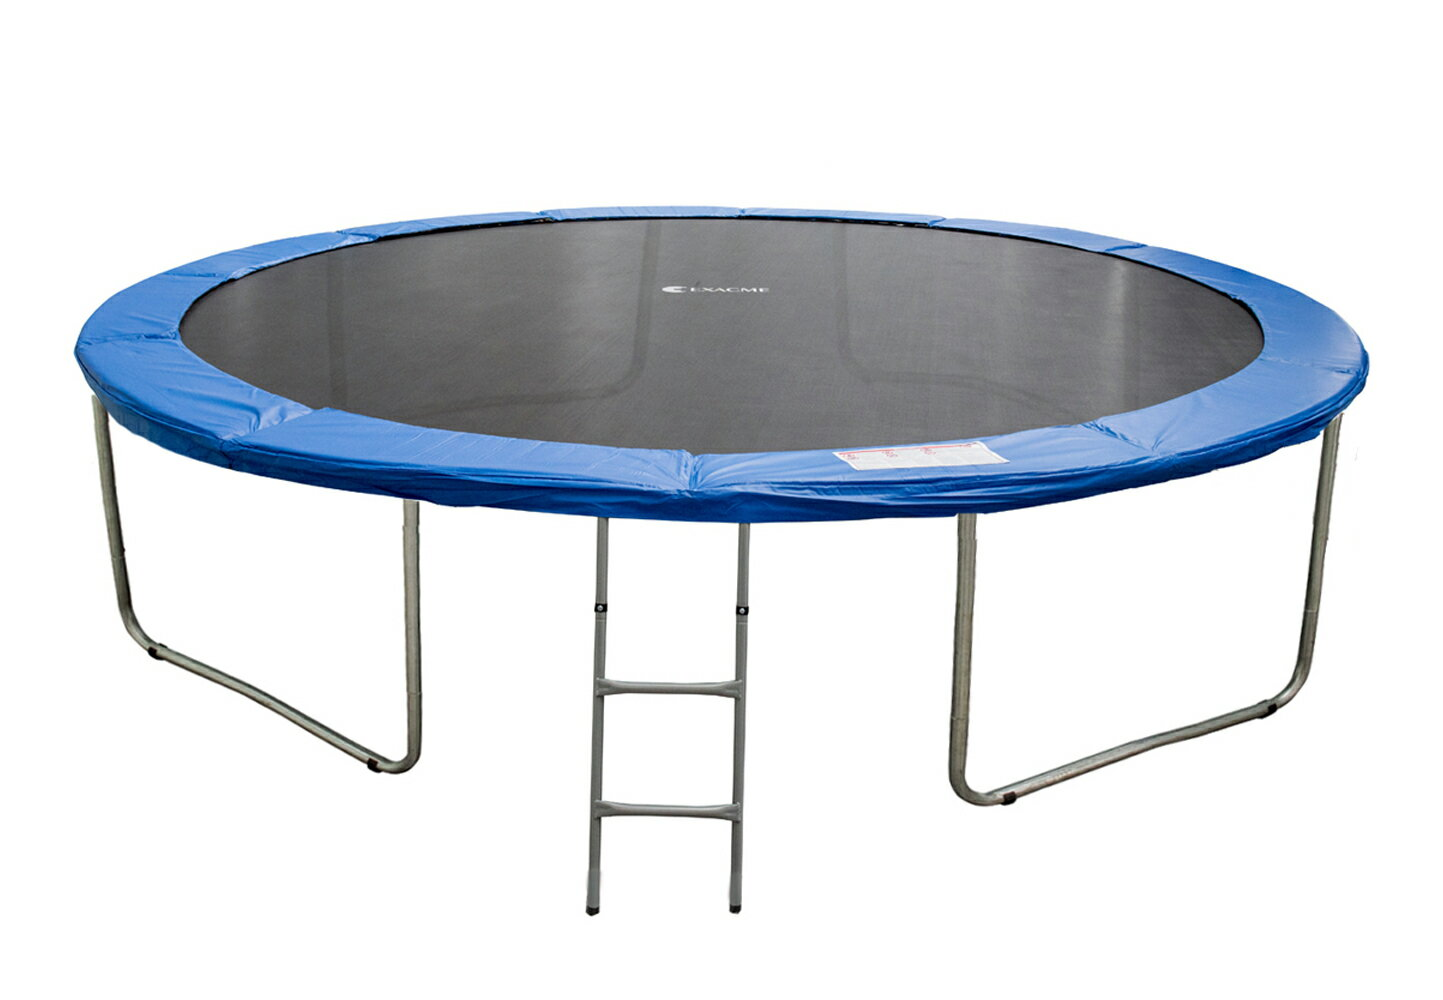 ExacMe 10 FT 4W Legs Trampoline w/ safety pad & Enclosure Net ALL-IN-ONE COMBO T10 1